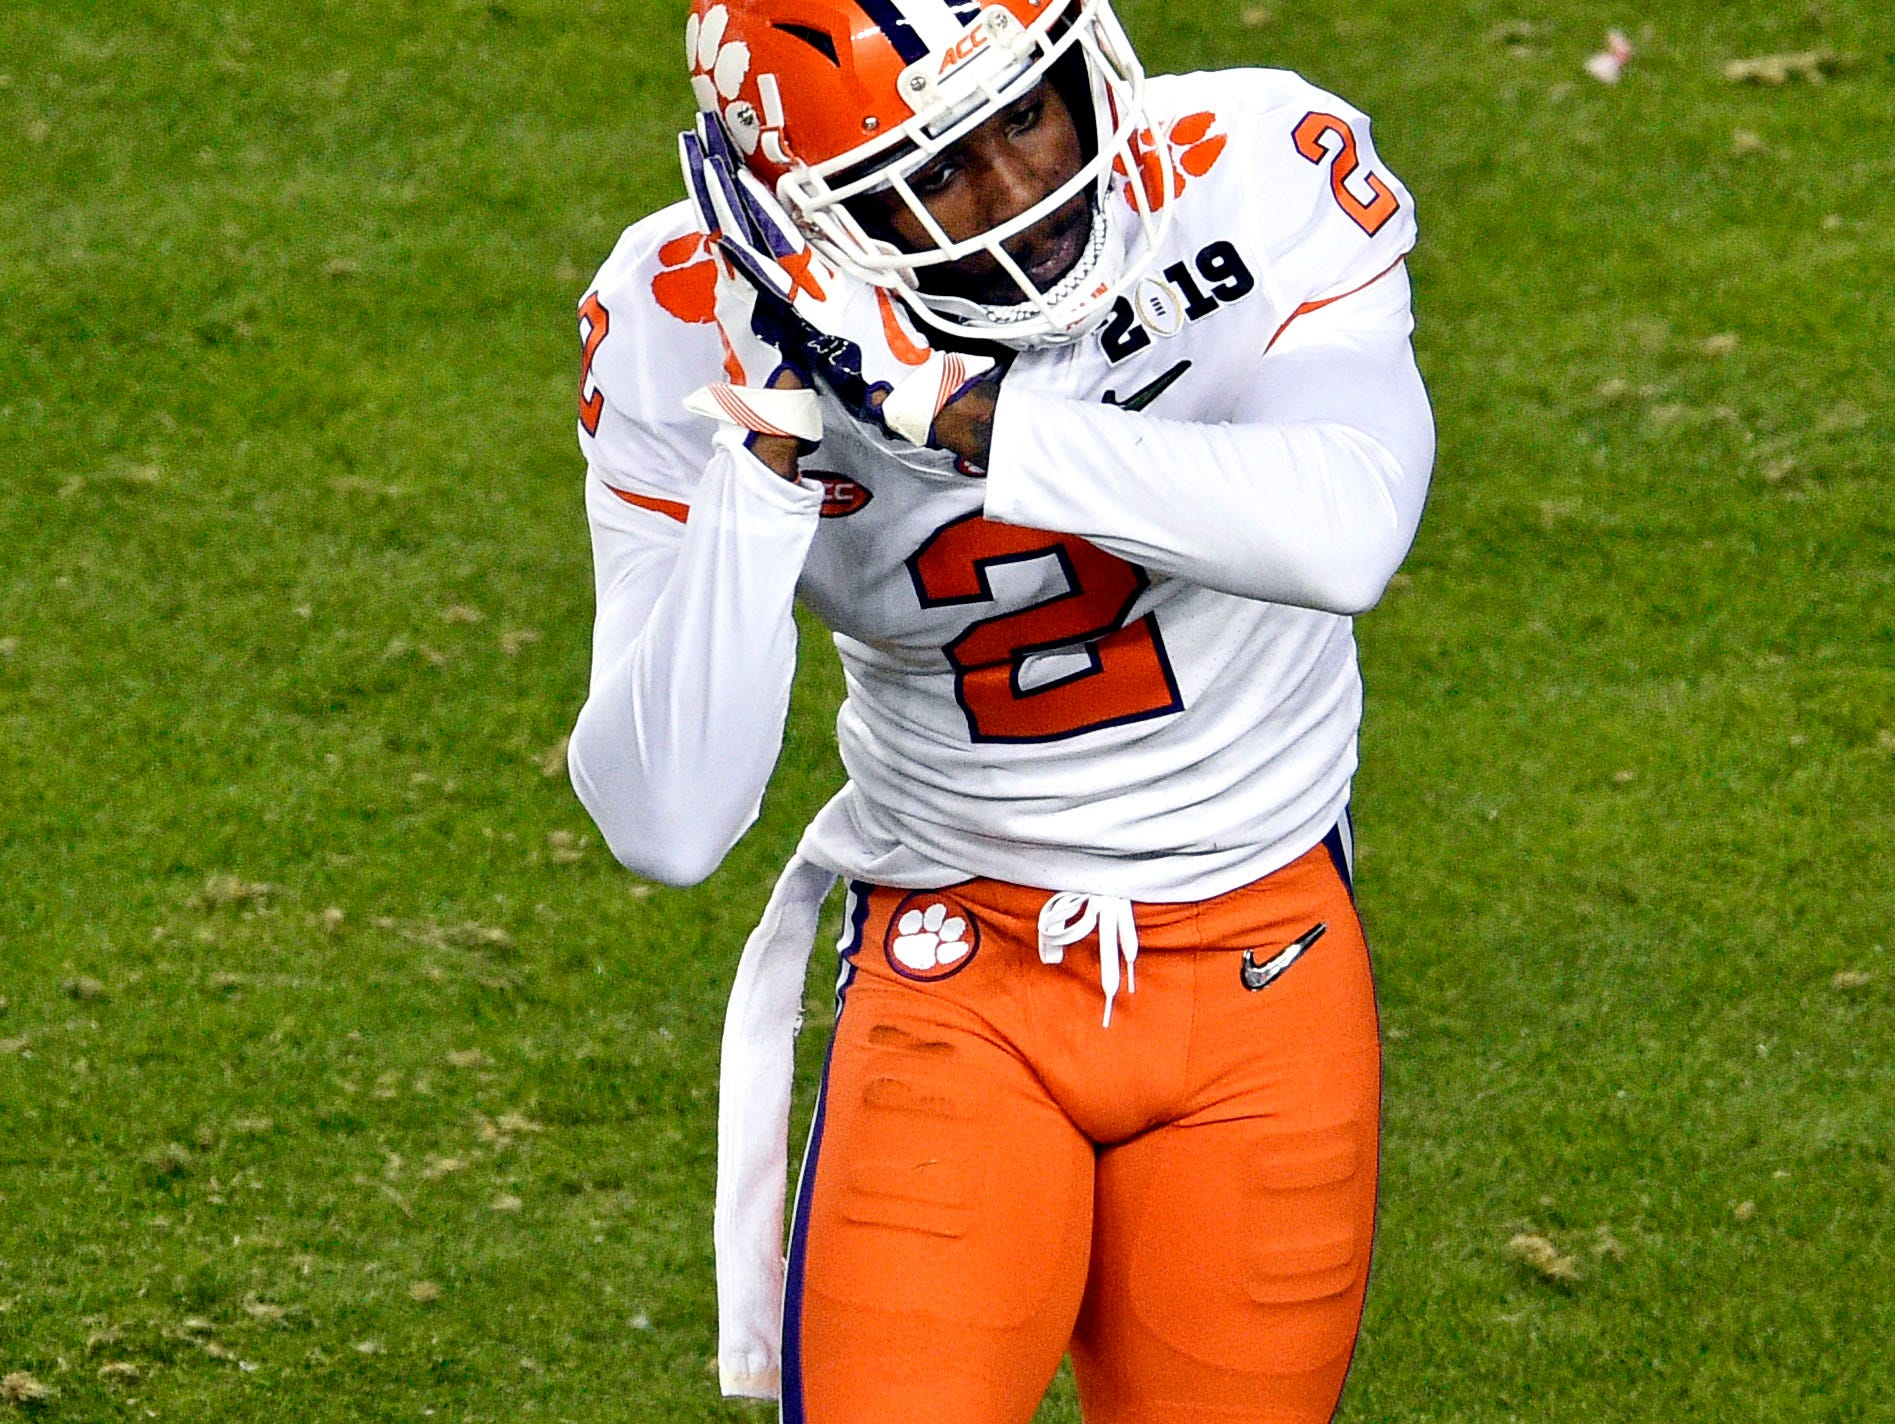 Jan 7, 2019; Santa Clara, CA, USA; Clemson Tigers cornerback Mark Fields (2) reacts after a play during the third quarter against the Alabama Crimson Tide during the 2019 College Football Playoff Championship game at Levi's Stadium. Mandatory Credit: Kelvin Kuo-USA TODAY Sports